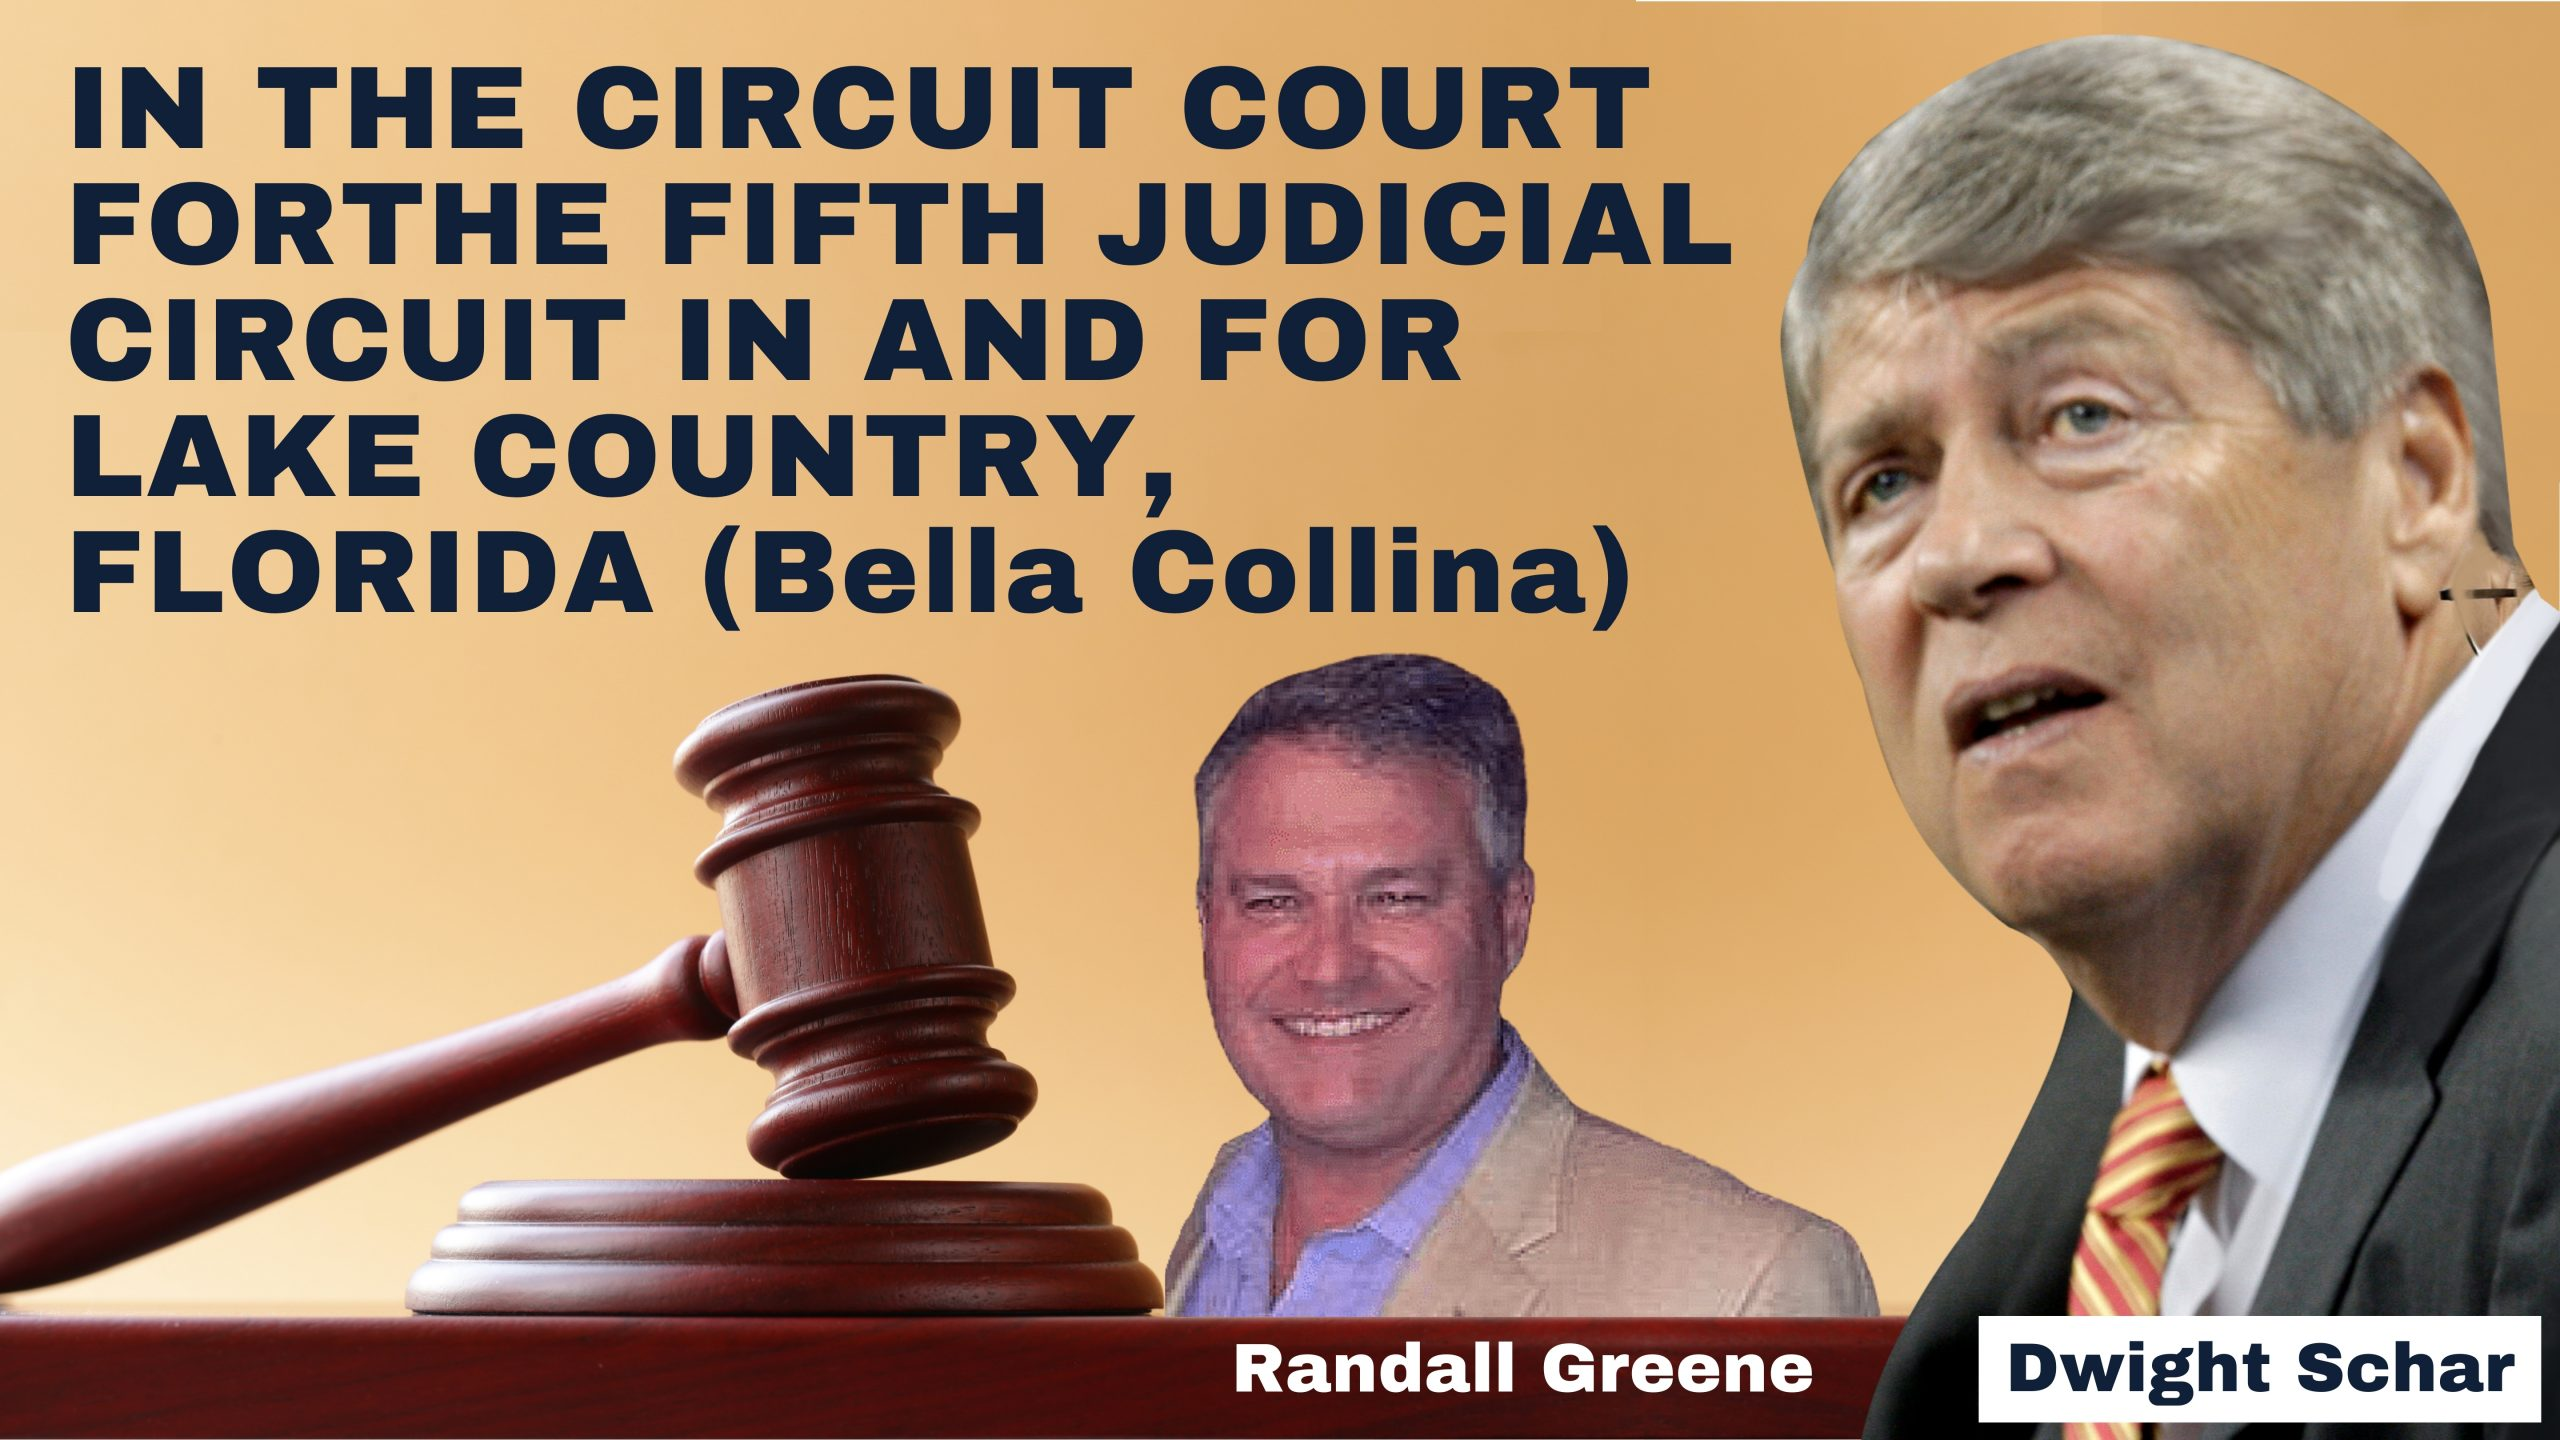 IN THE CIRCUIT COURT, FIFTH JUDICIAL CIRCUIT, LAKE COUNTY, FLORIDA APPELLATE DIVISION